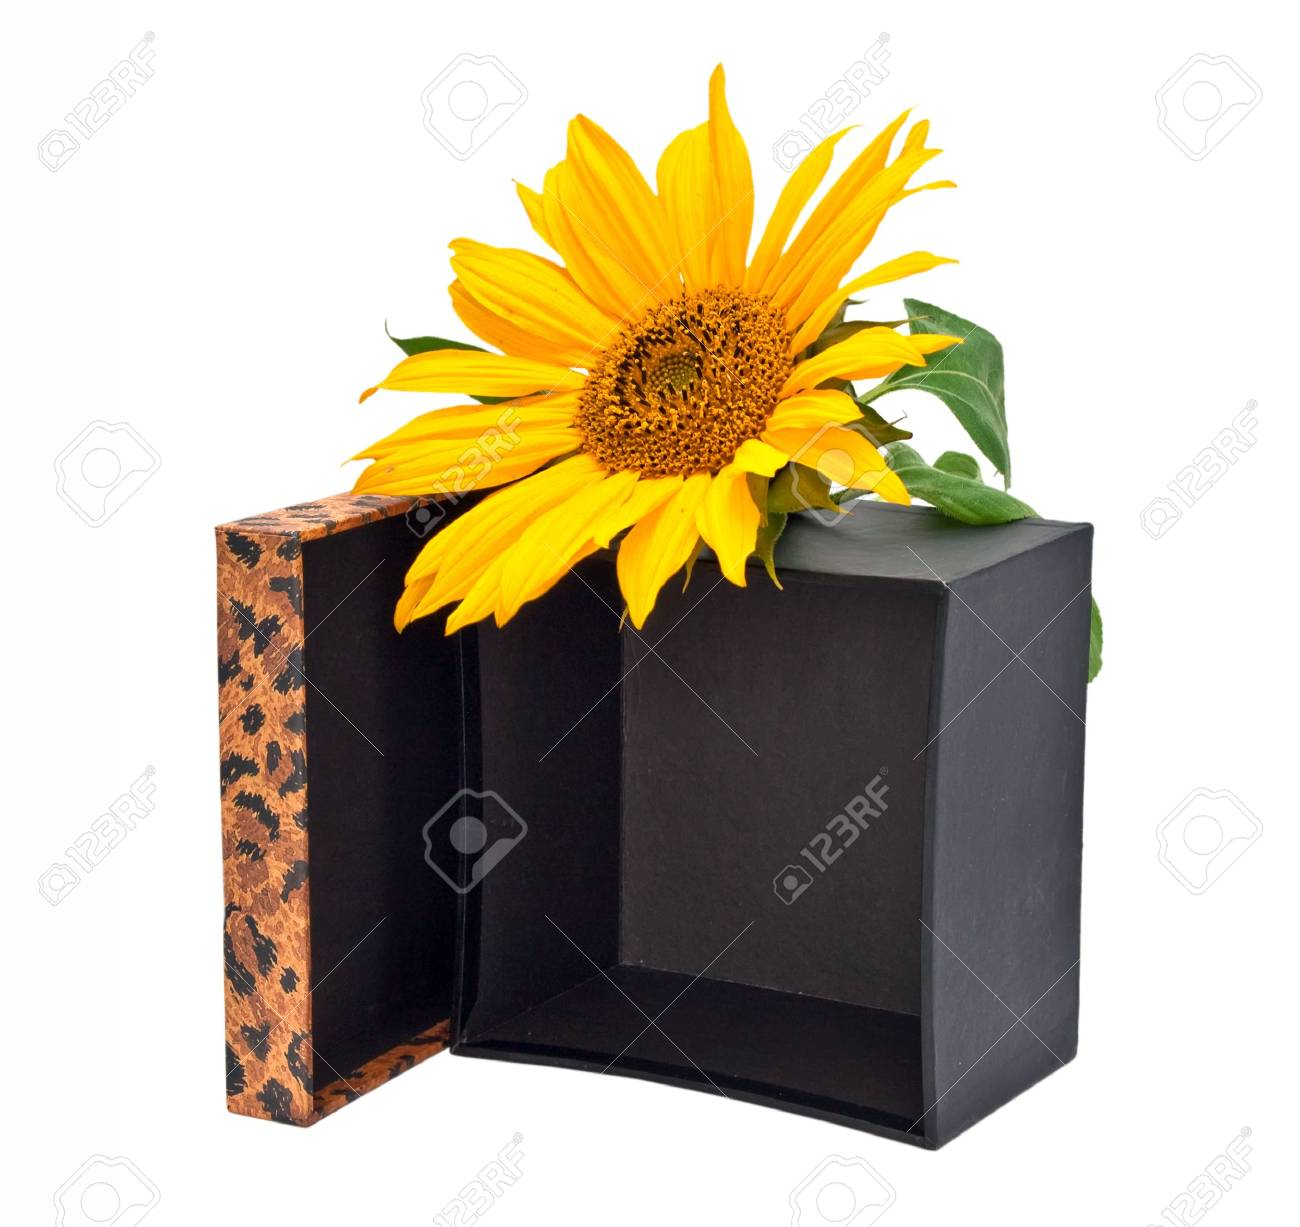 Gift box with flower sunflower isolated on a white background. Stock Photo - 7899902